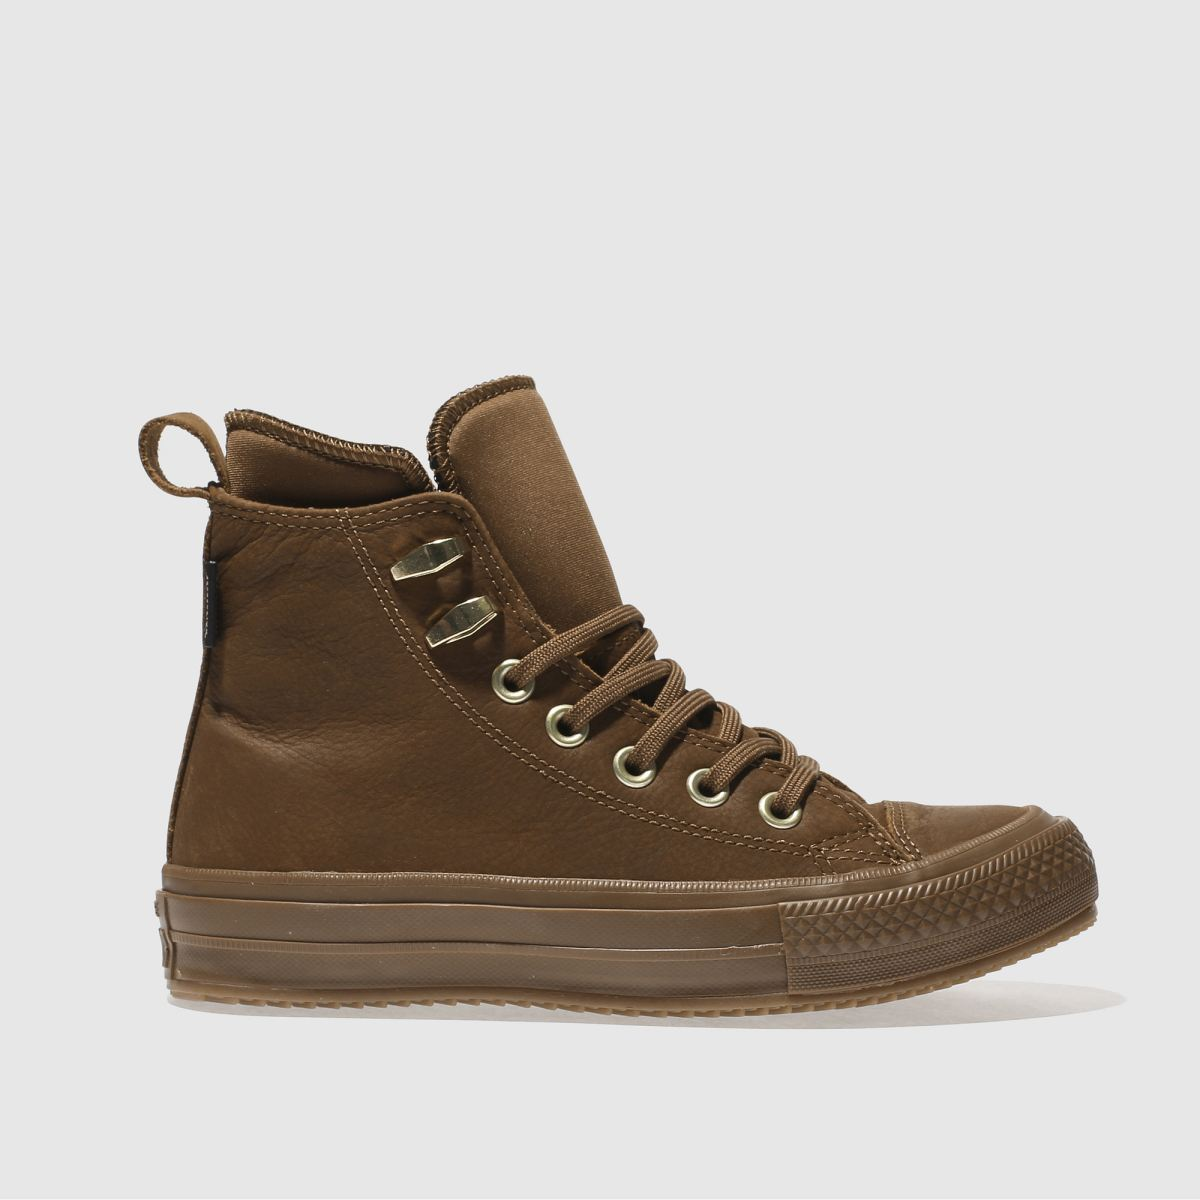 Converse Tan All Star Waterproof Boot Hi Trainers